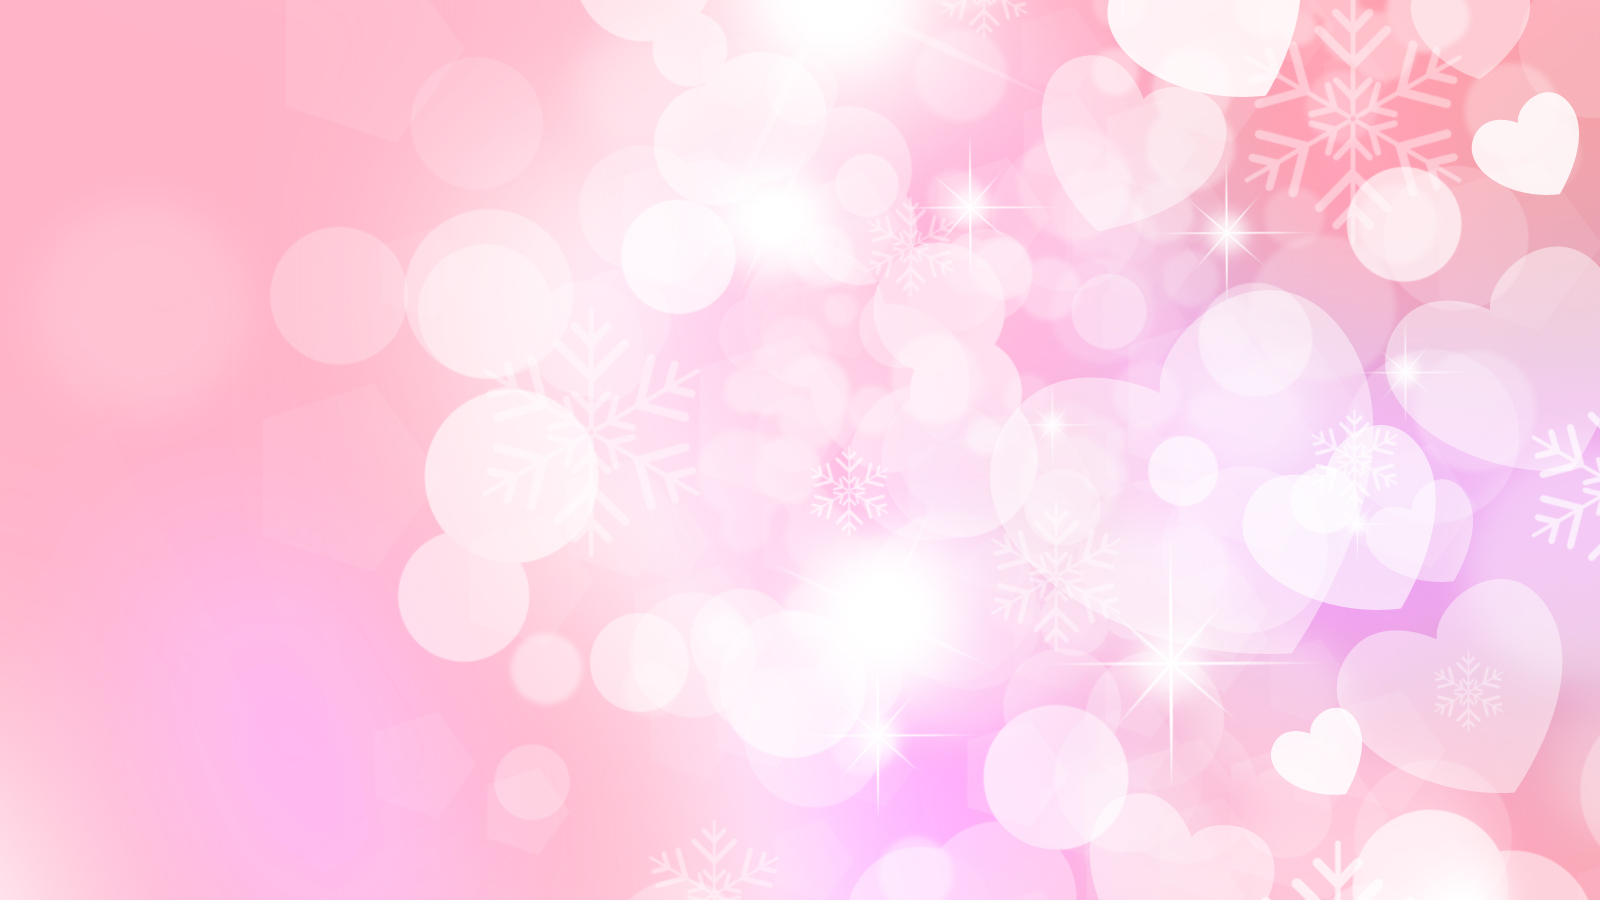 Free Download Celebration Love Backgrounds Photoshop Graphics